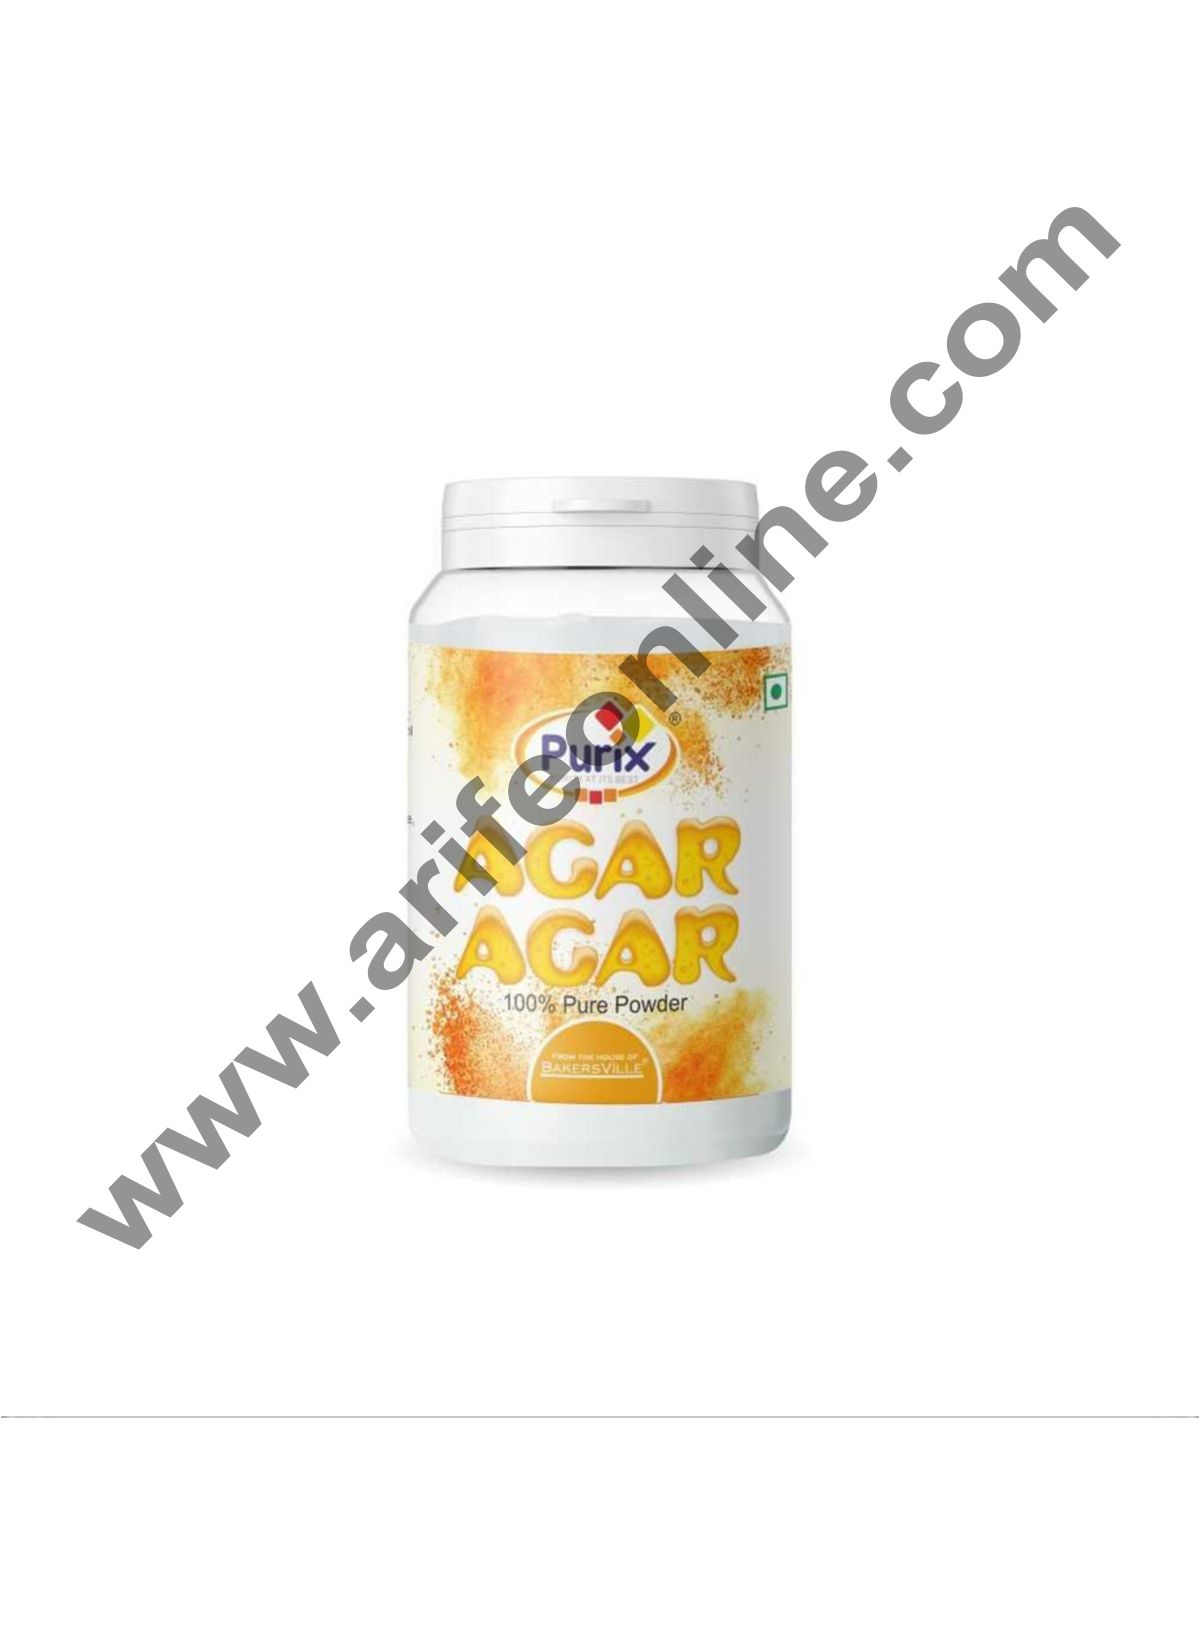 Purix™ Agar-agar Powder, 75gm